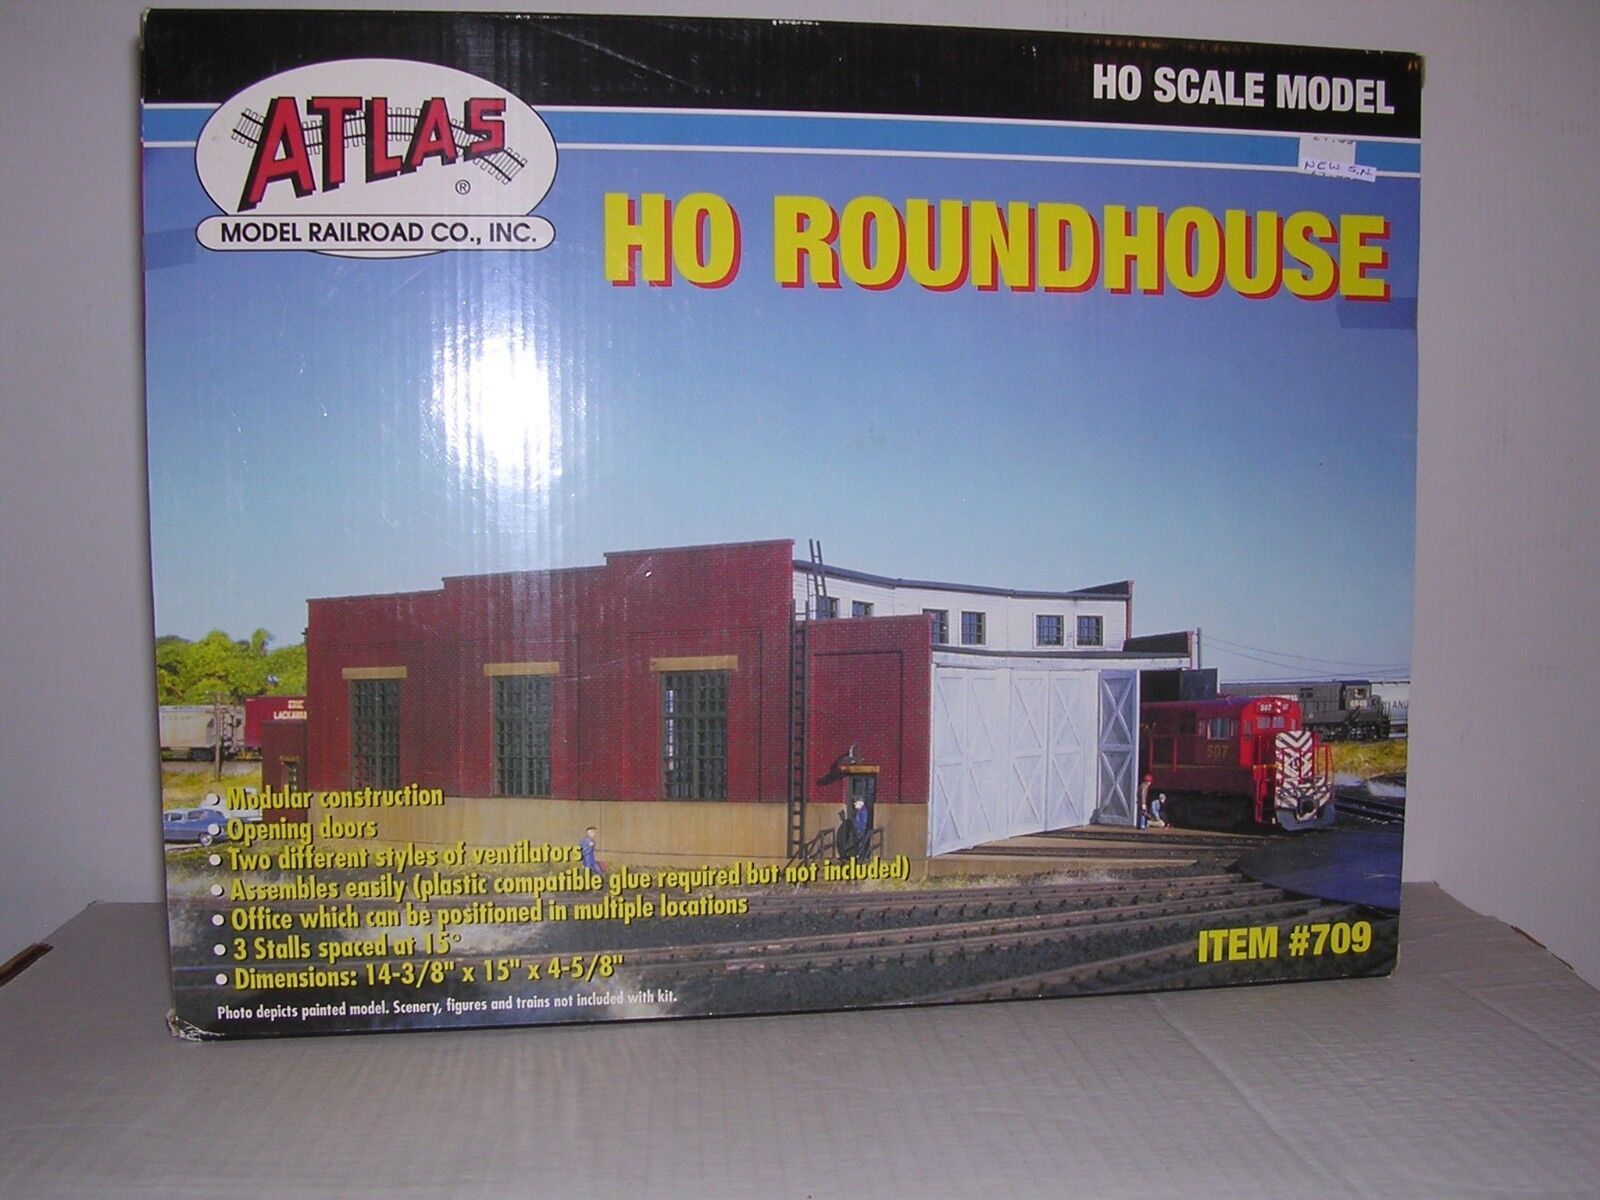 ATLAS Stall Engine Roundhouse w Opening Doors - Building Kit  H.O. 1 87